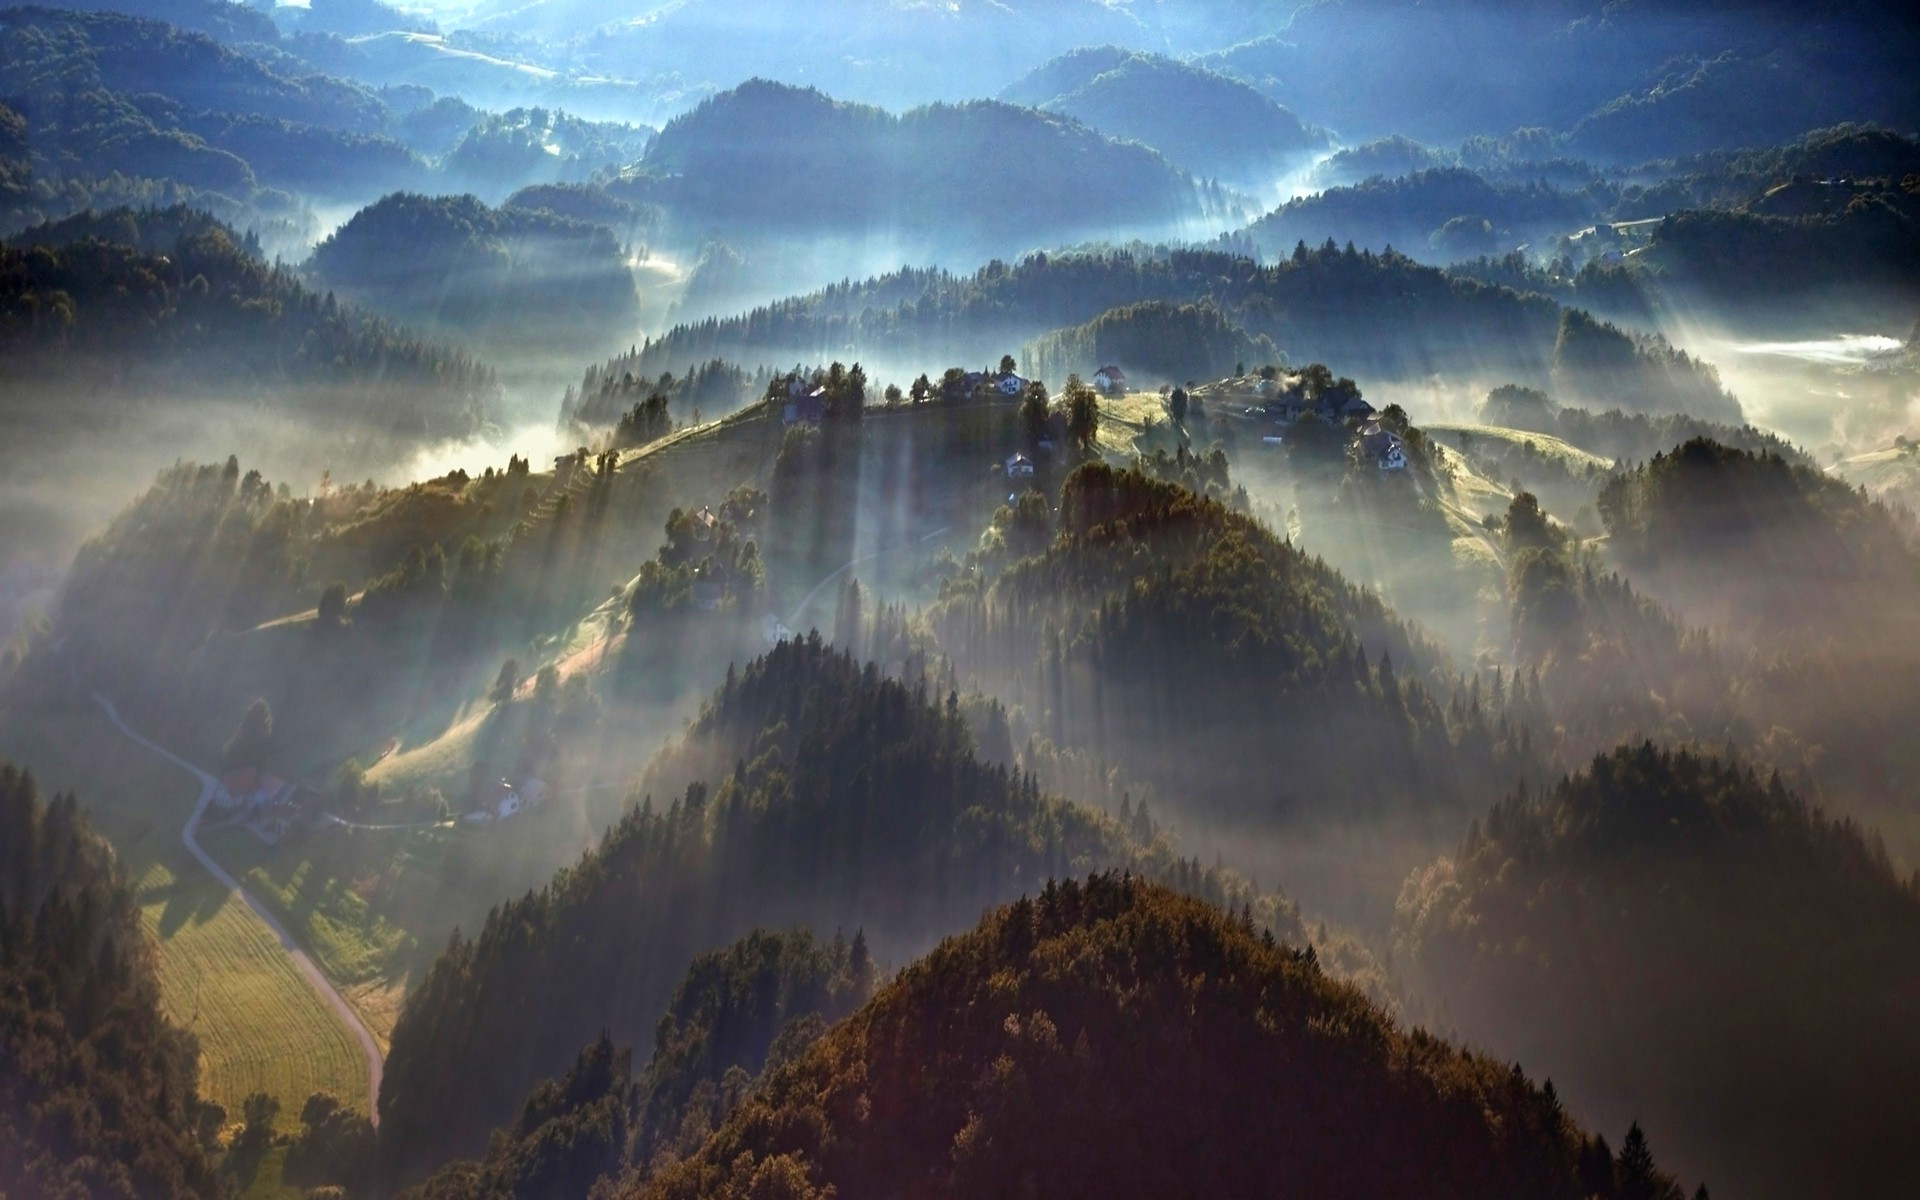 Fall Mountain Scenery Wallpaper Nature Landscape Mist Forest Trees Morning Sunbeams